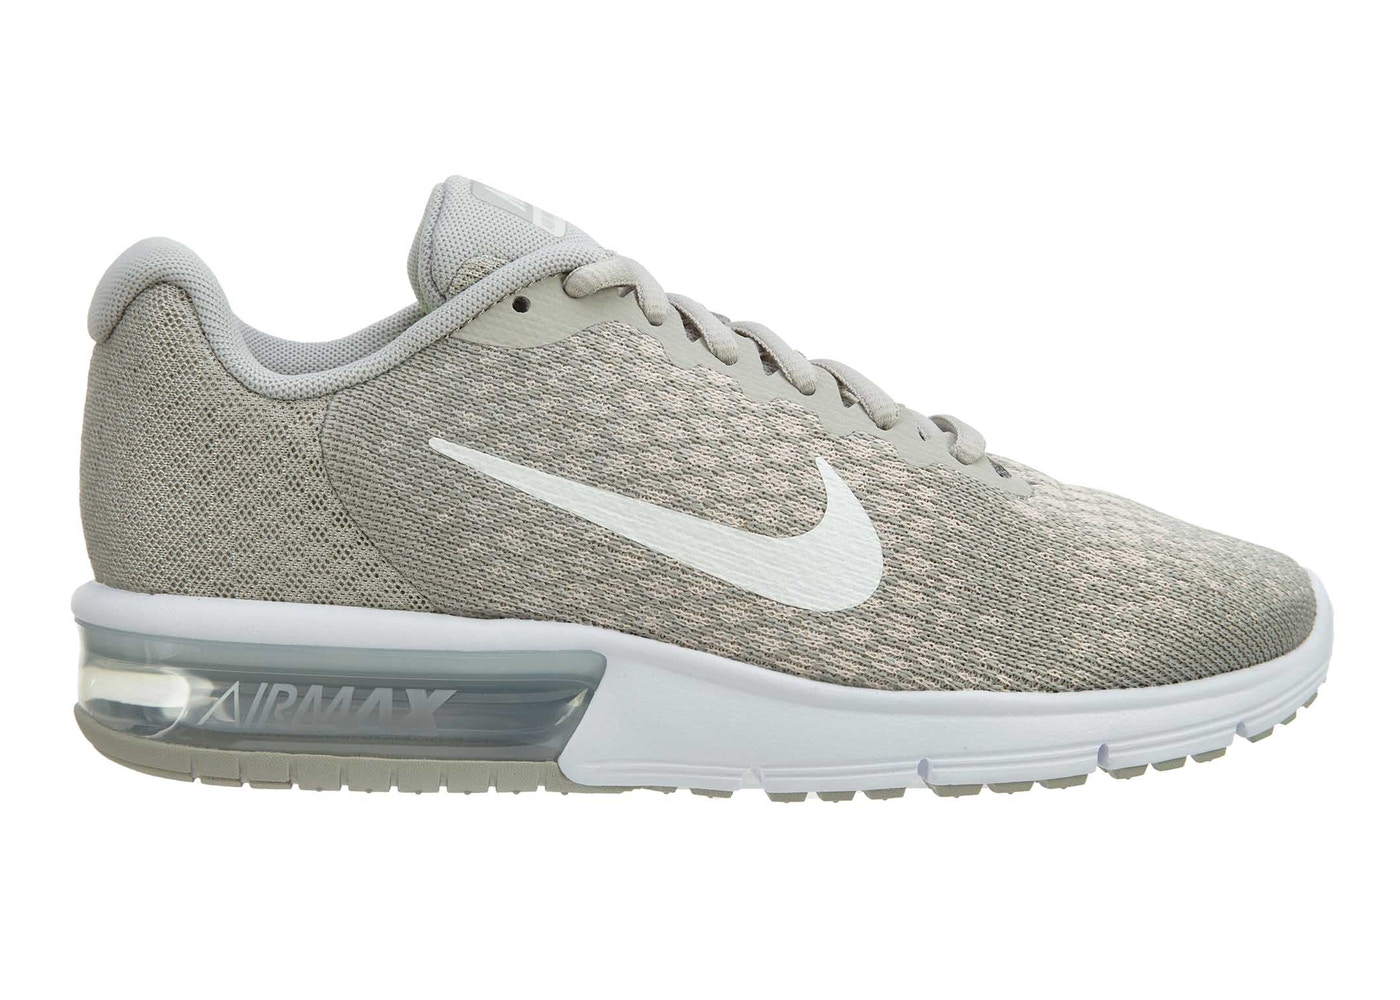 33d2e298a568 Air Max Sequent 2 Pale Grey Sail-Light Bone (W) - 852465-011